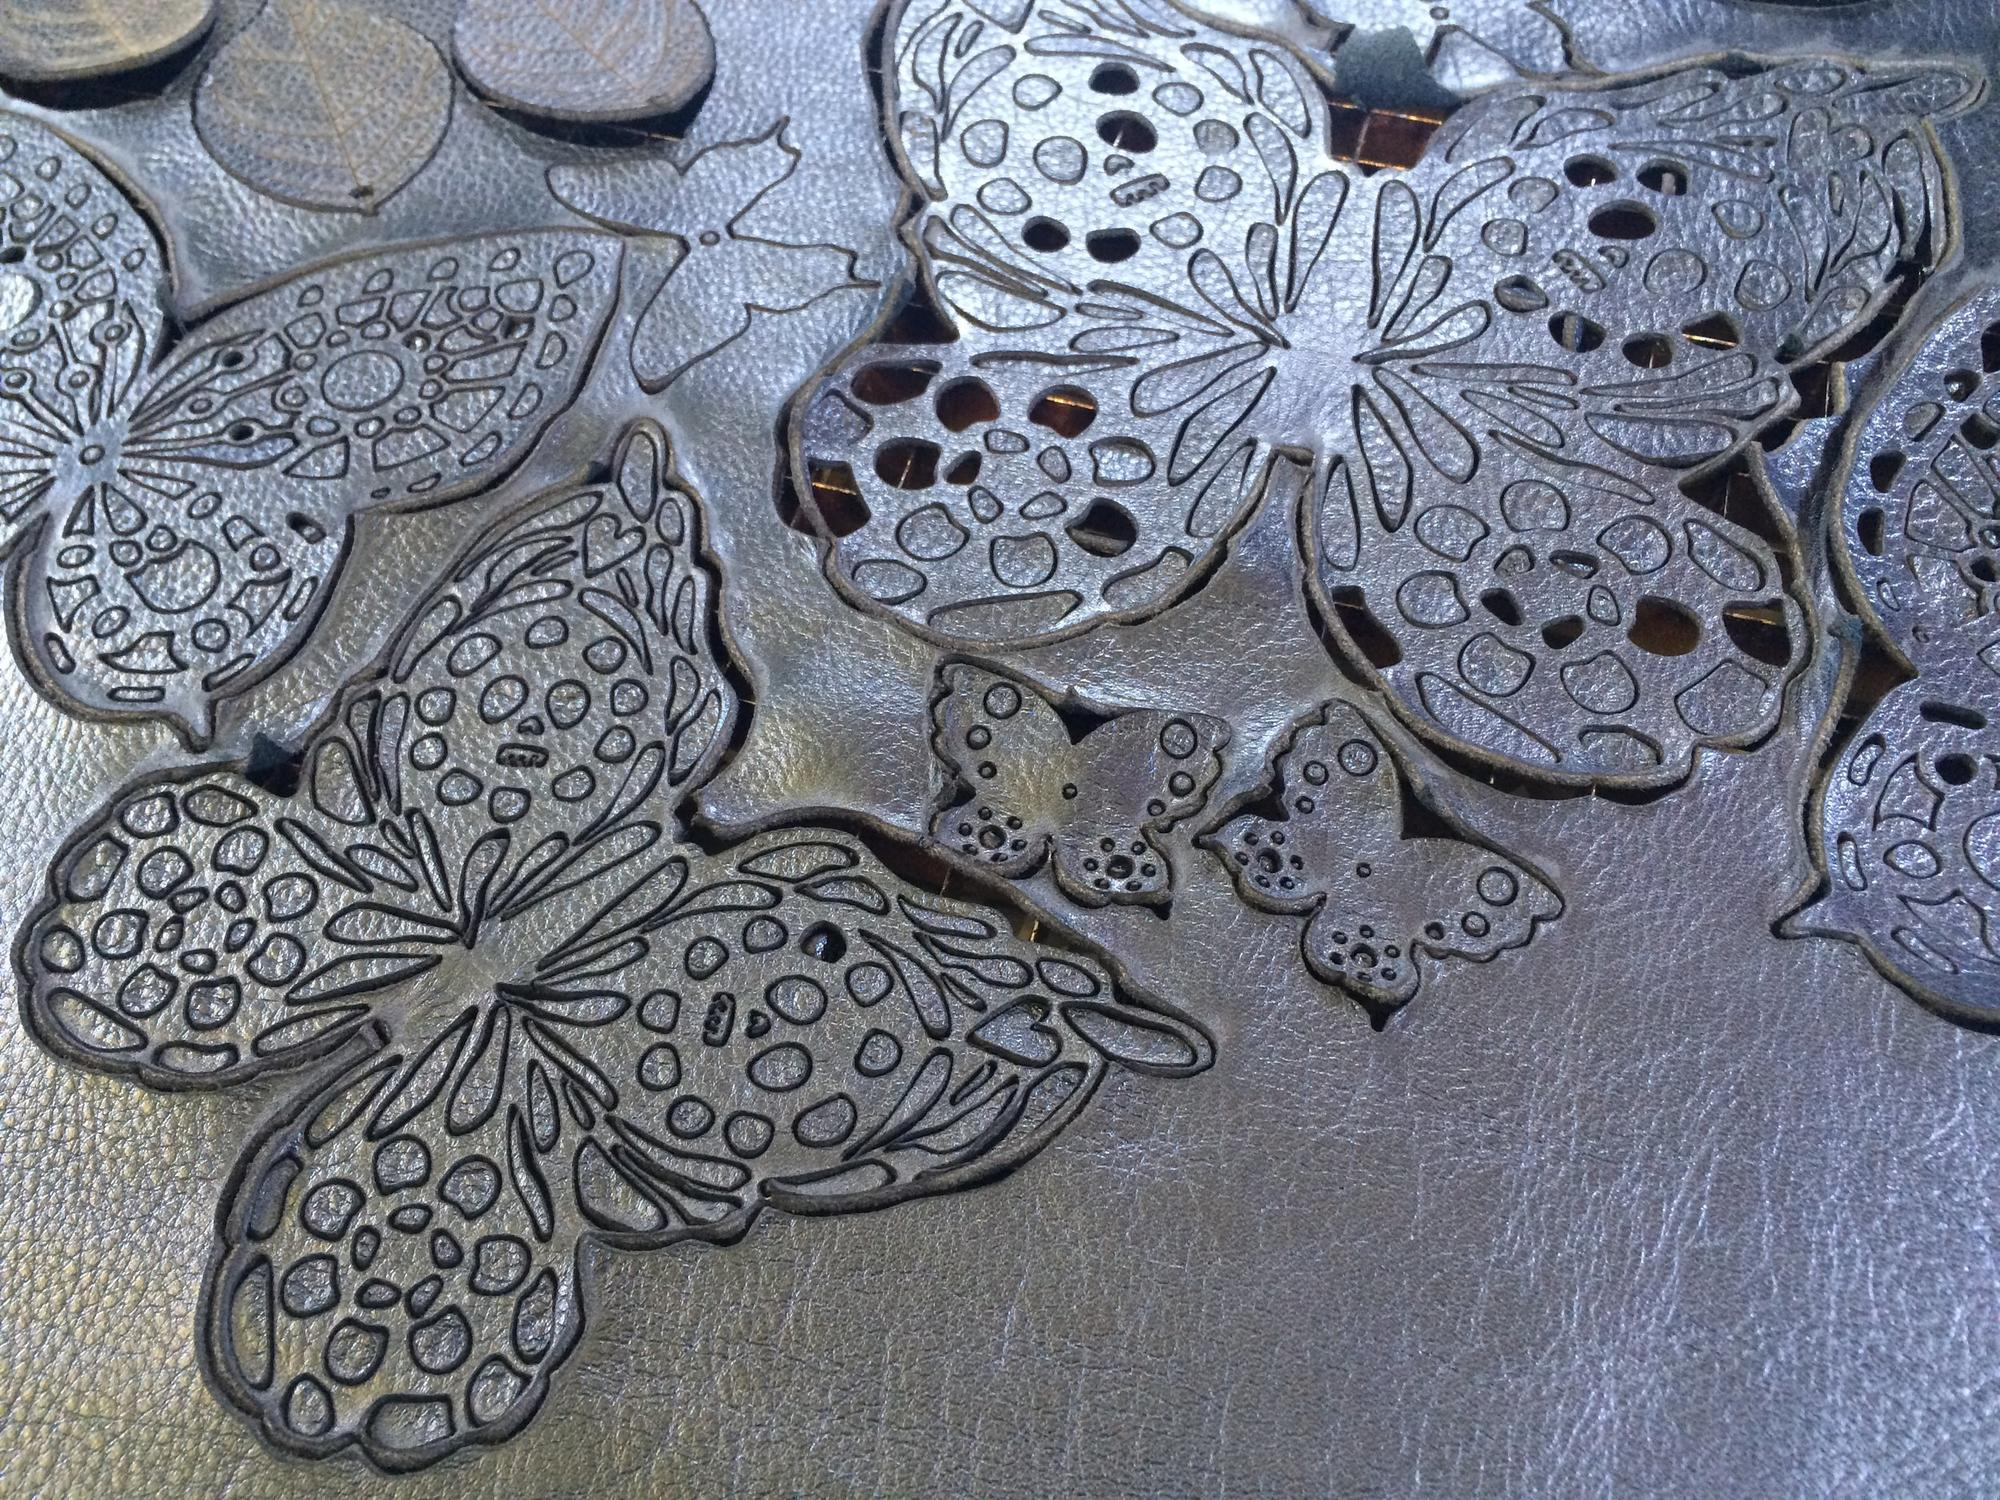 Butterfly designs in leather created from a laser cutter.